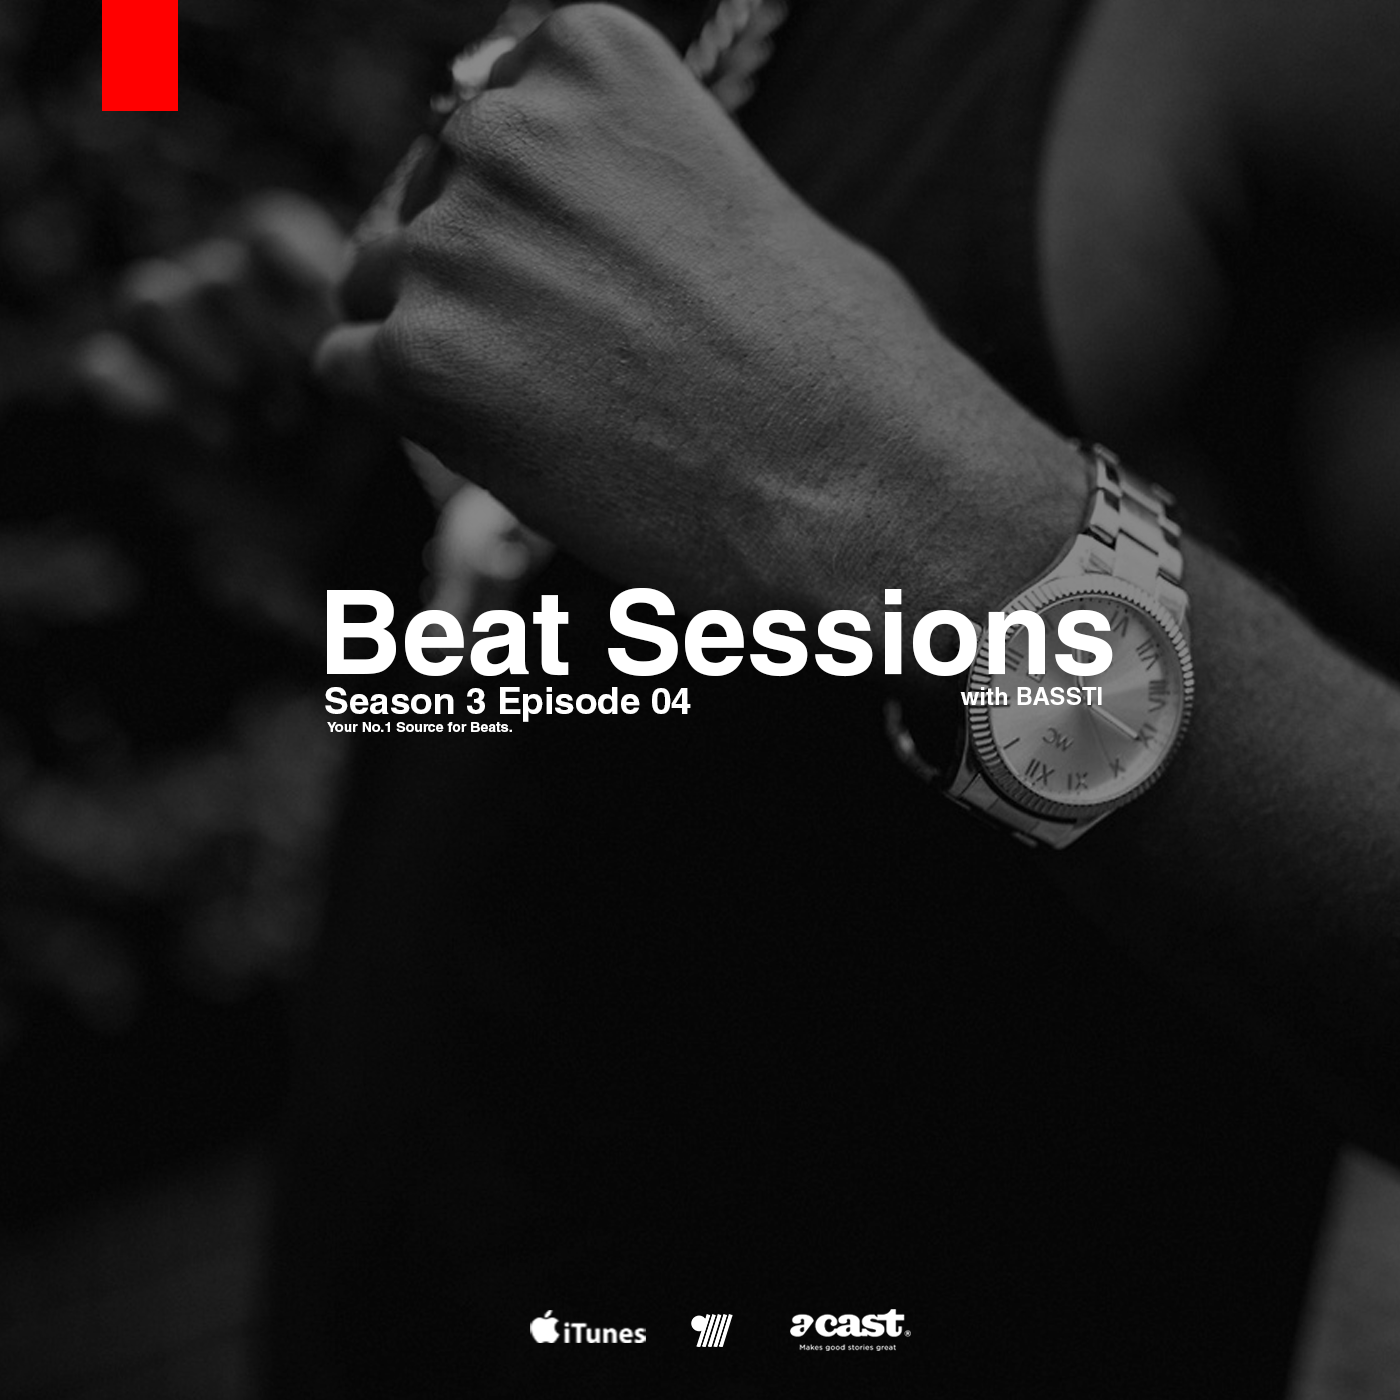 Beat Sessions: S03E04 with Bassti.